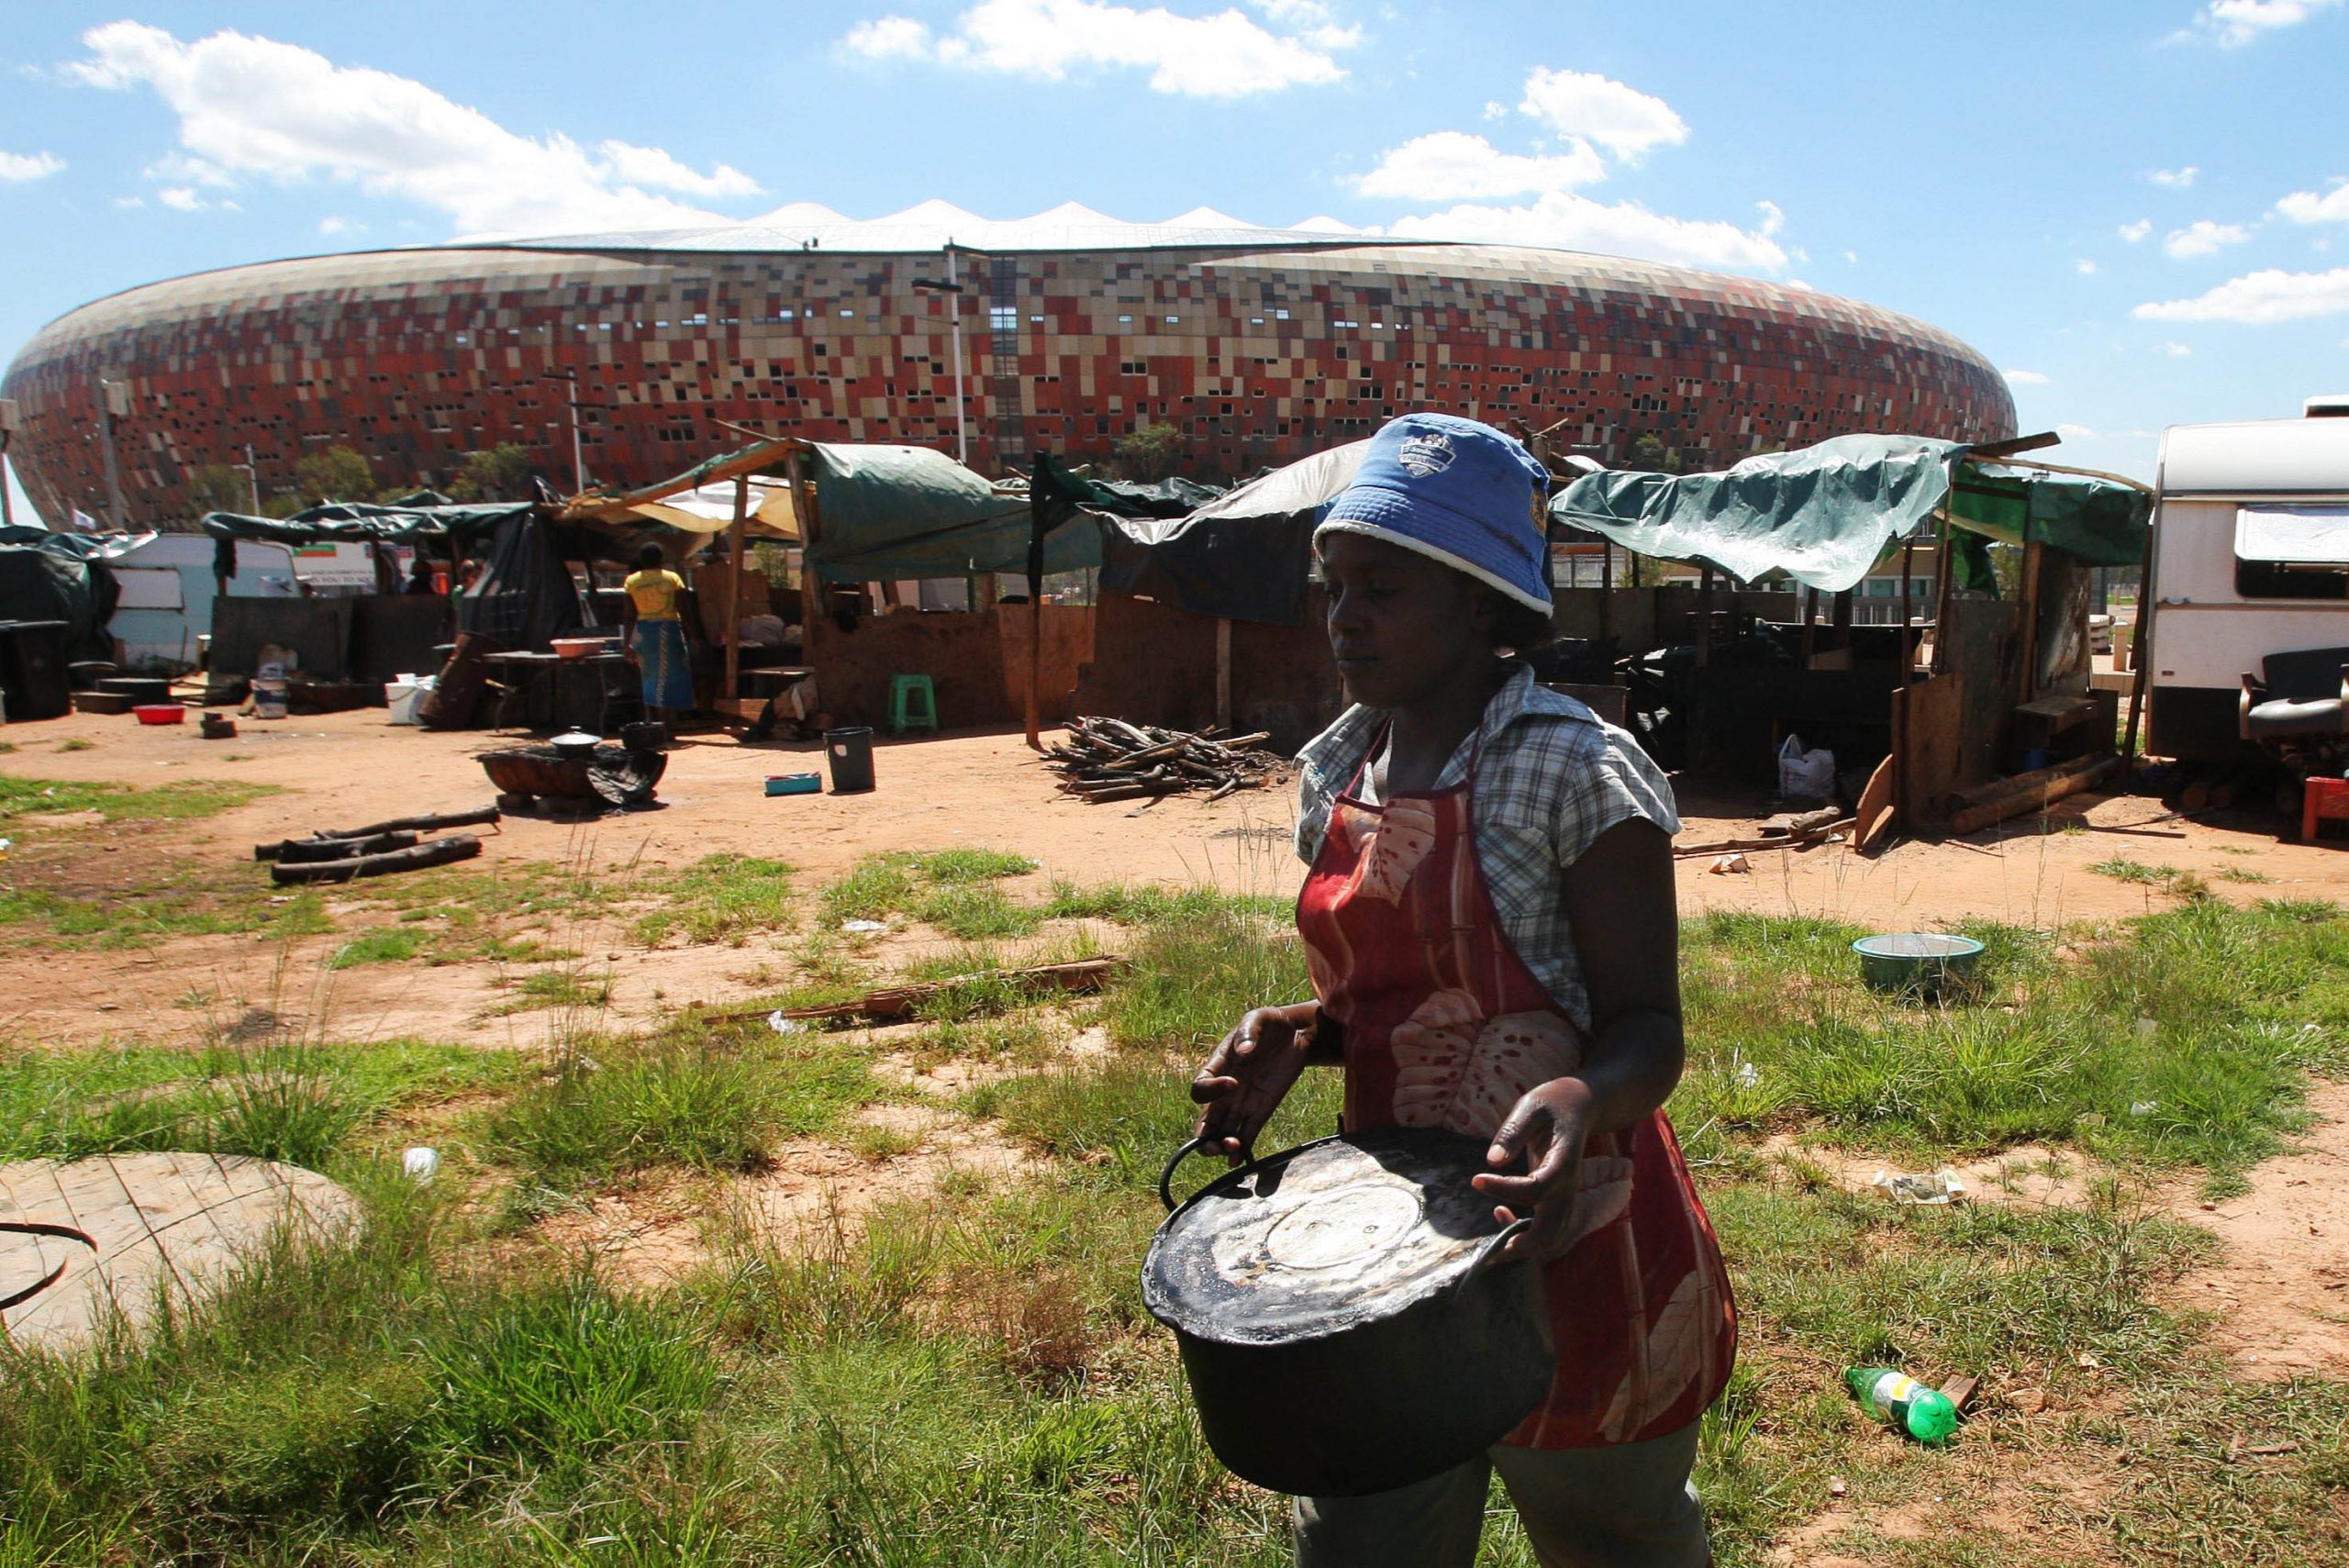 8 March 2010: Food traders outside the Soccer City stadium in Soweto a few months before the start of the 2010 World Cup. They were forced to leave the area in the months leading up to the tournament because of Fifa regulations. (Photograph by Foto24/ Gallo Images/ Getty Images)